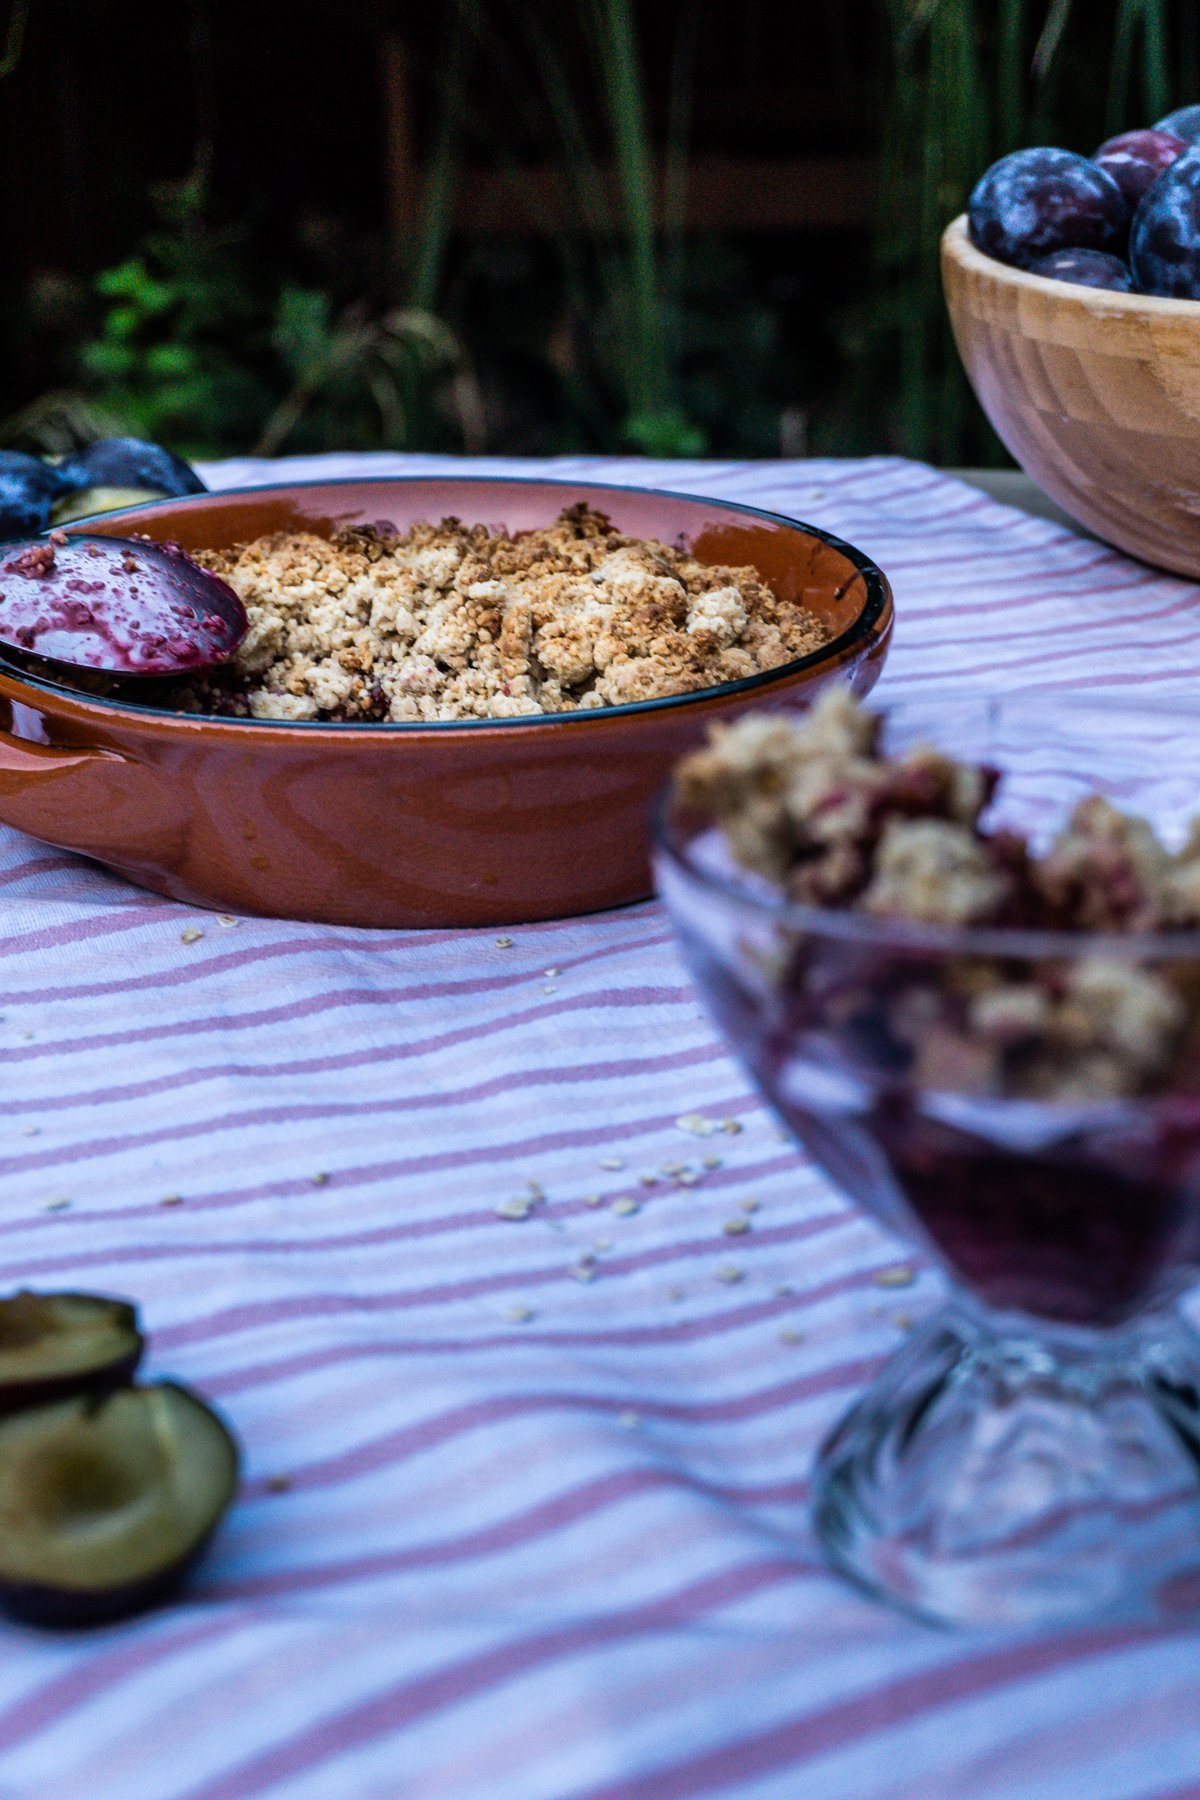 Baked Plum Crumble with a spoon in focus